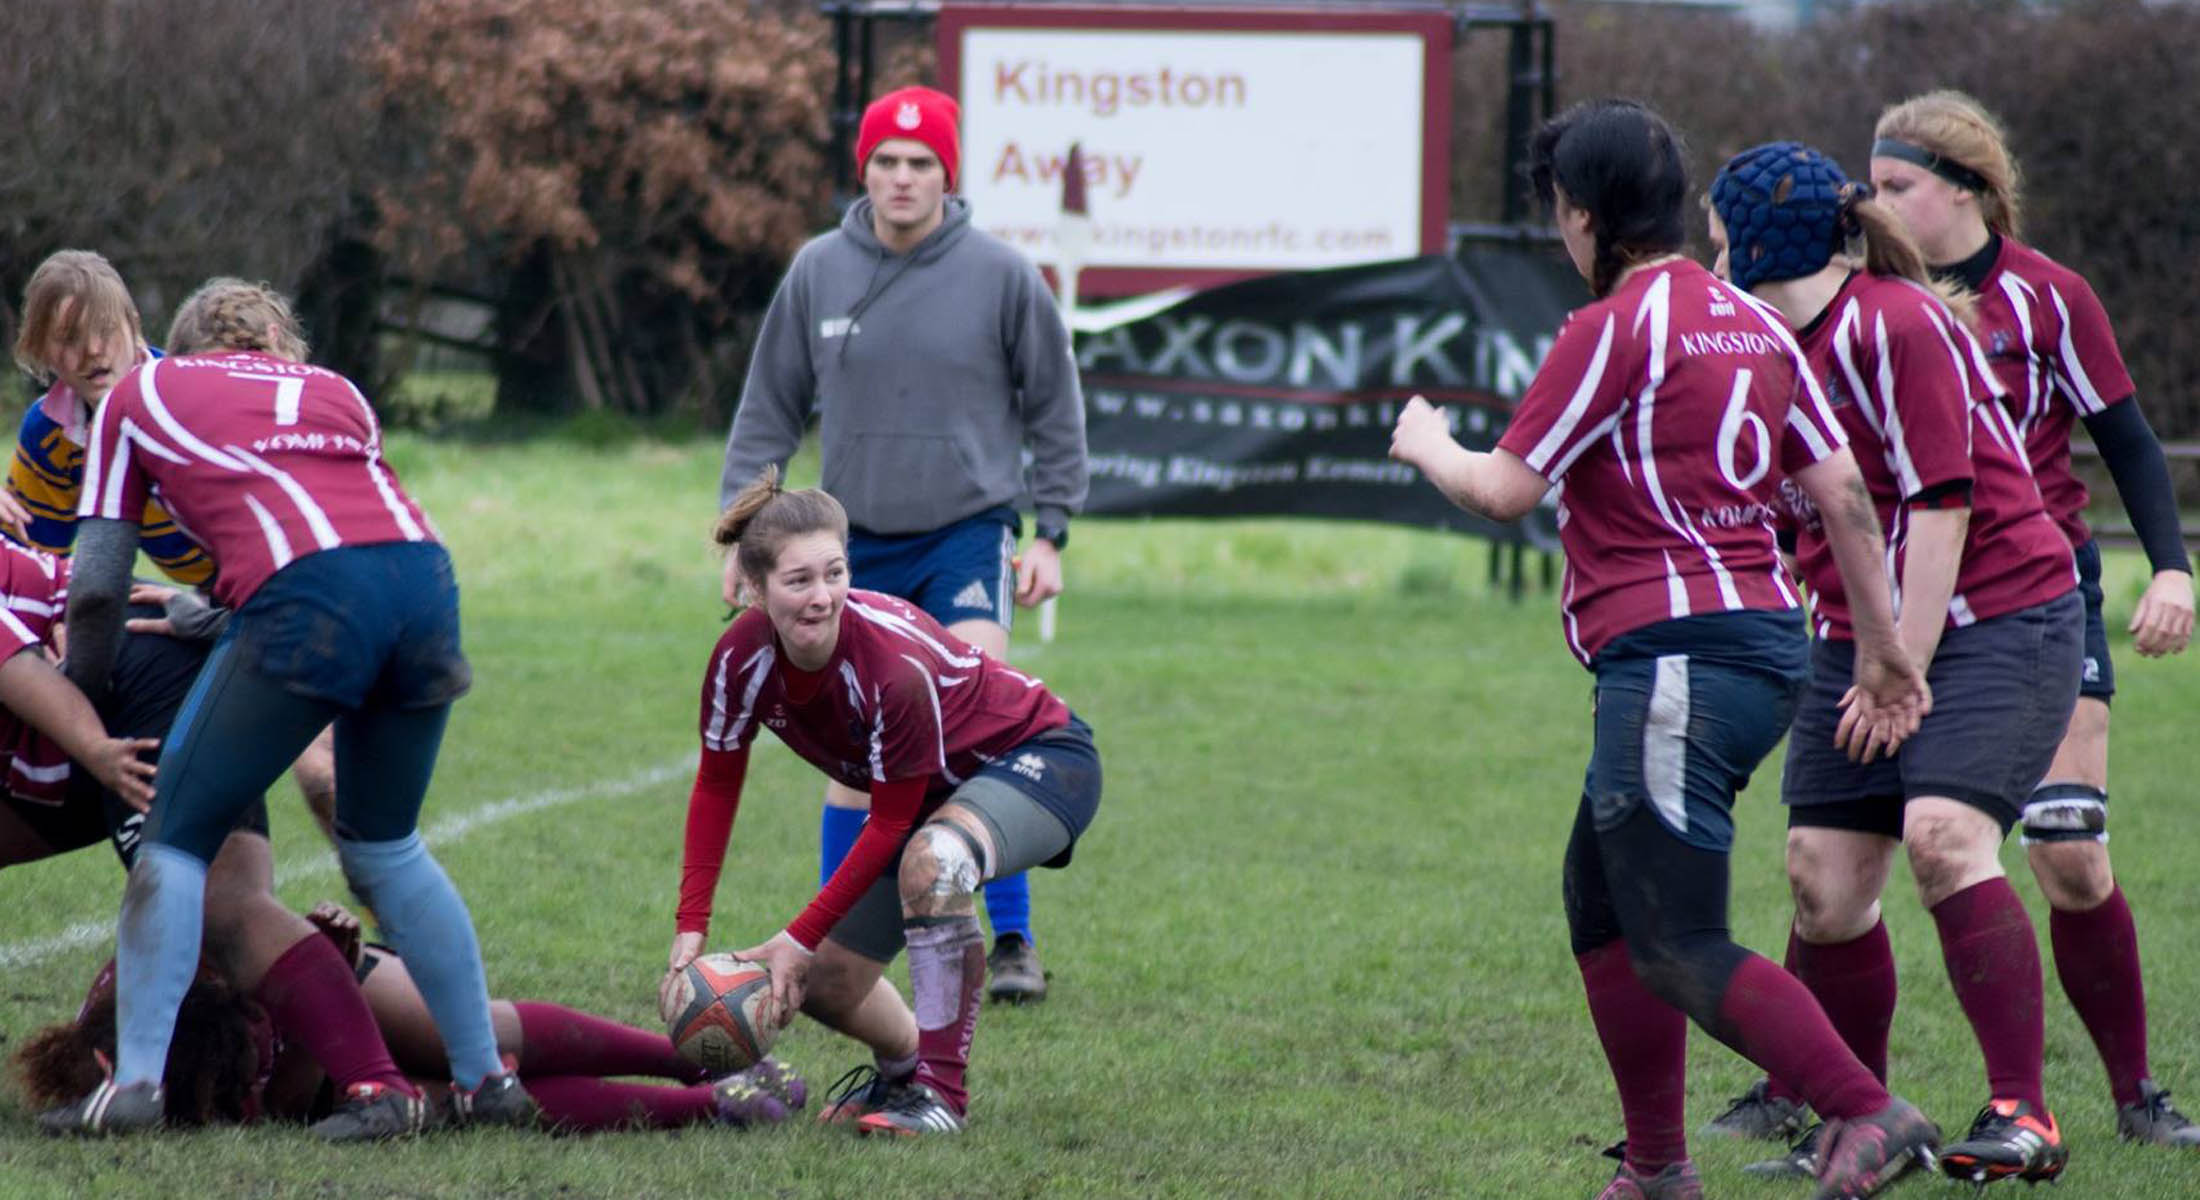 kingstonrfc-ladies-2